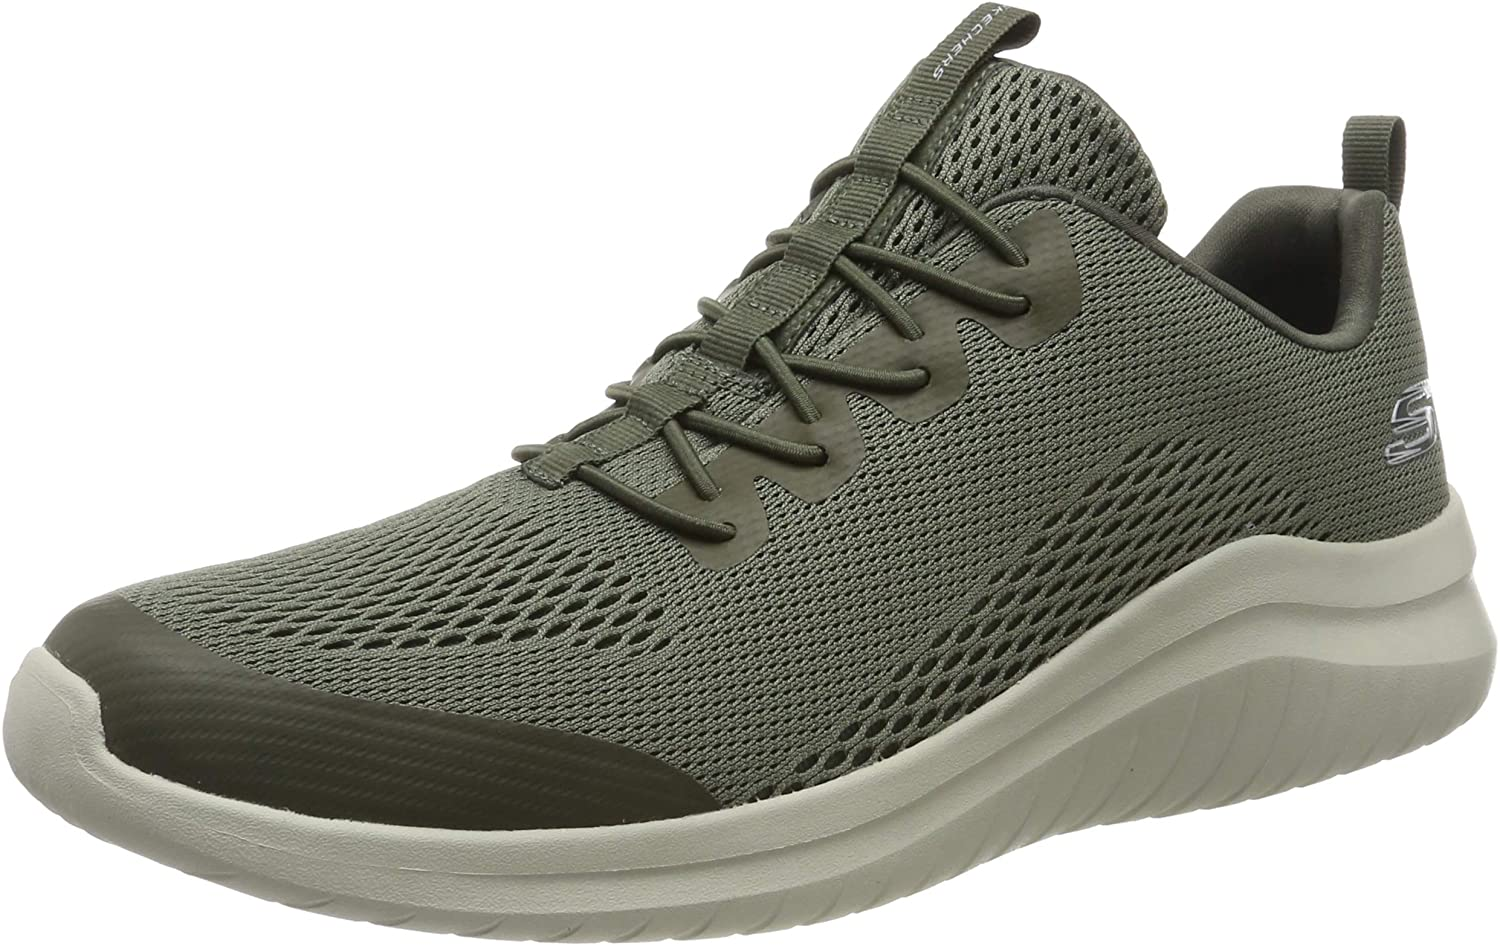 Skechers Men's Low-Top Trainers